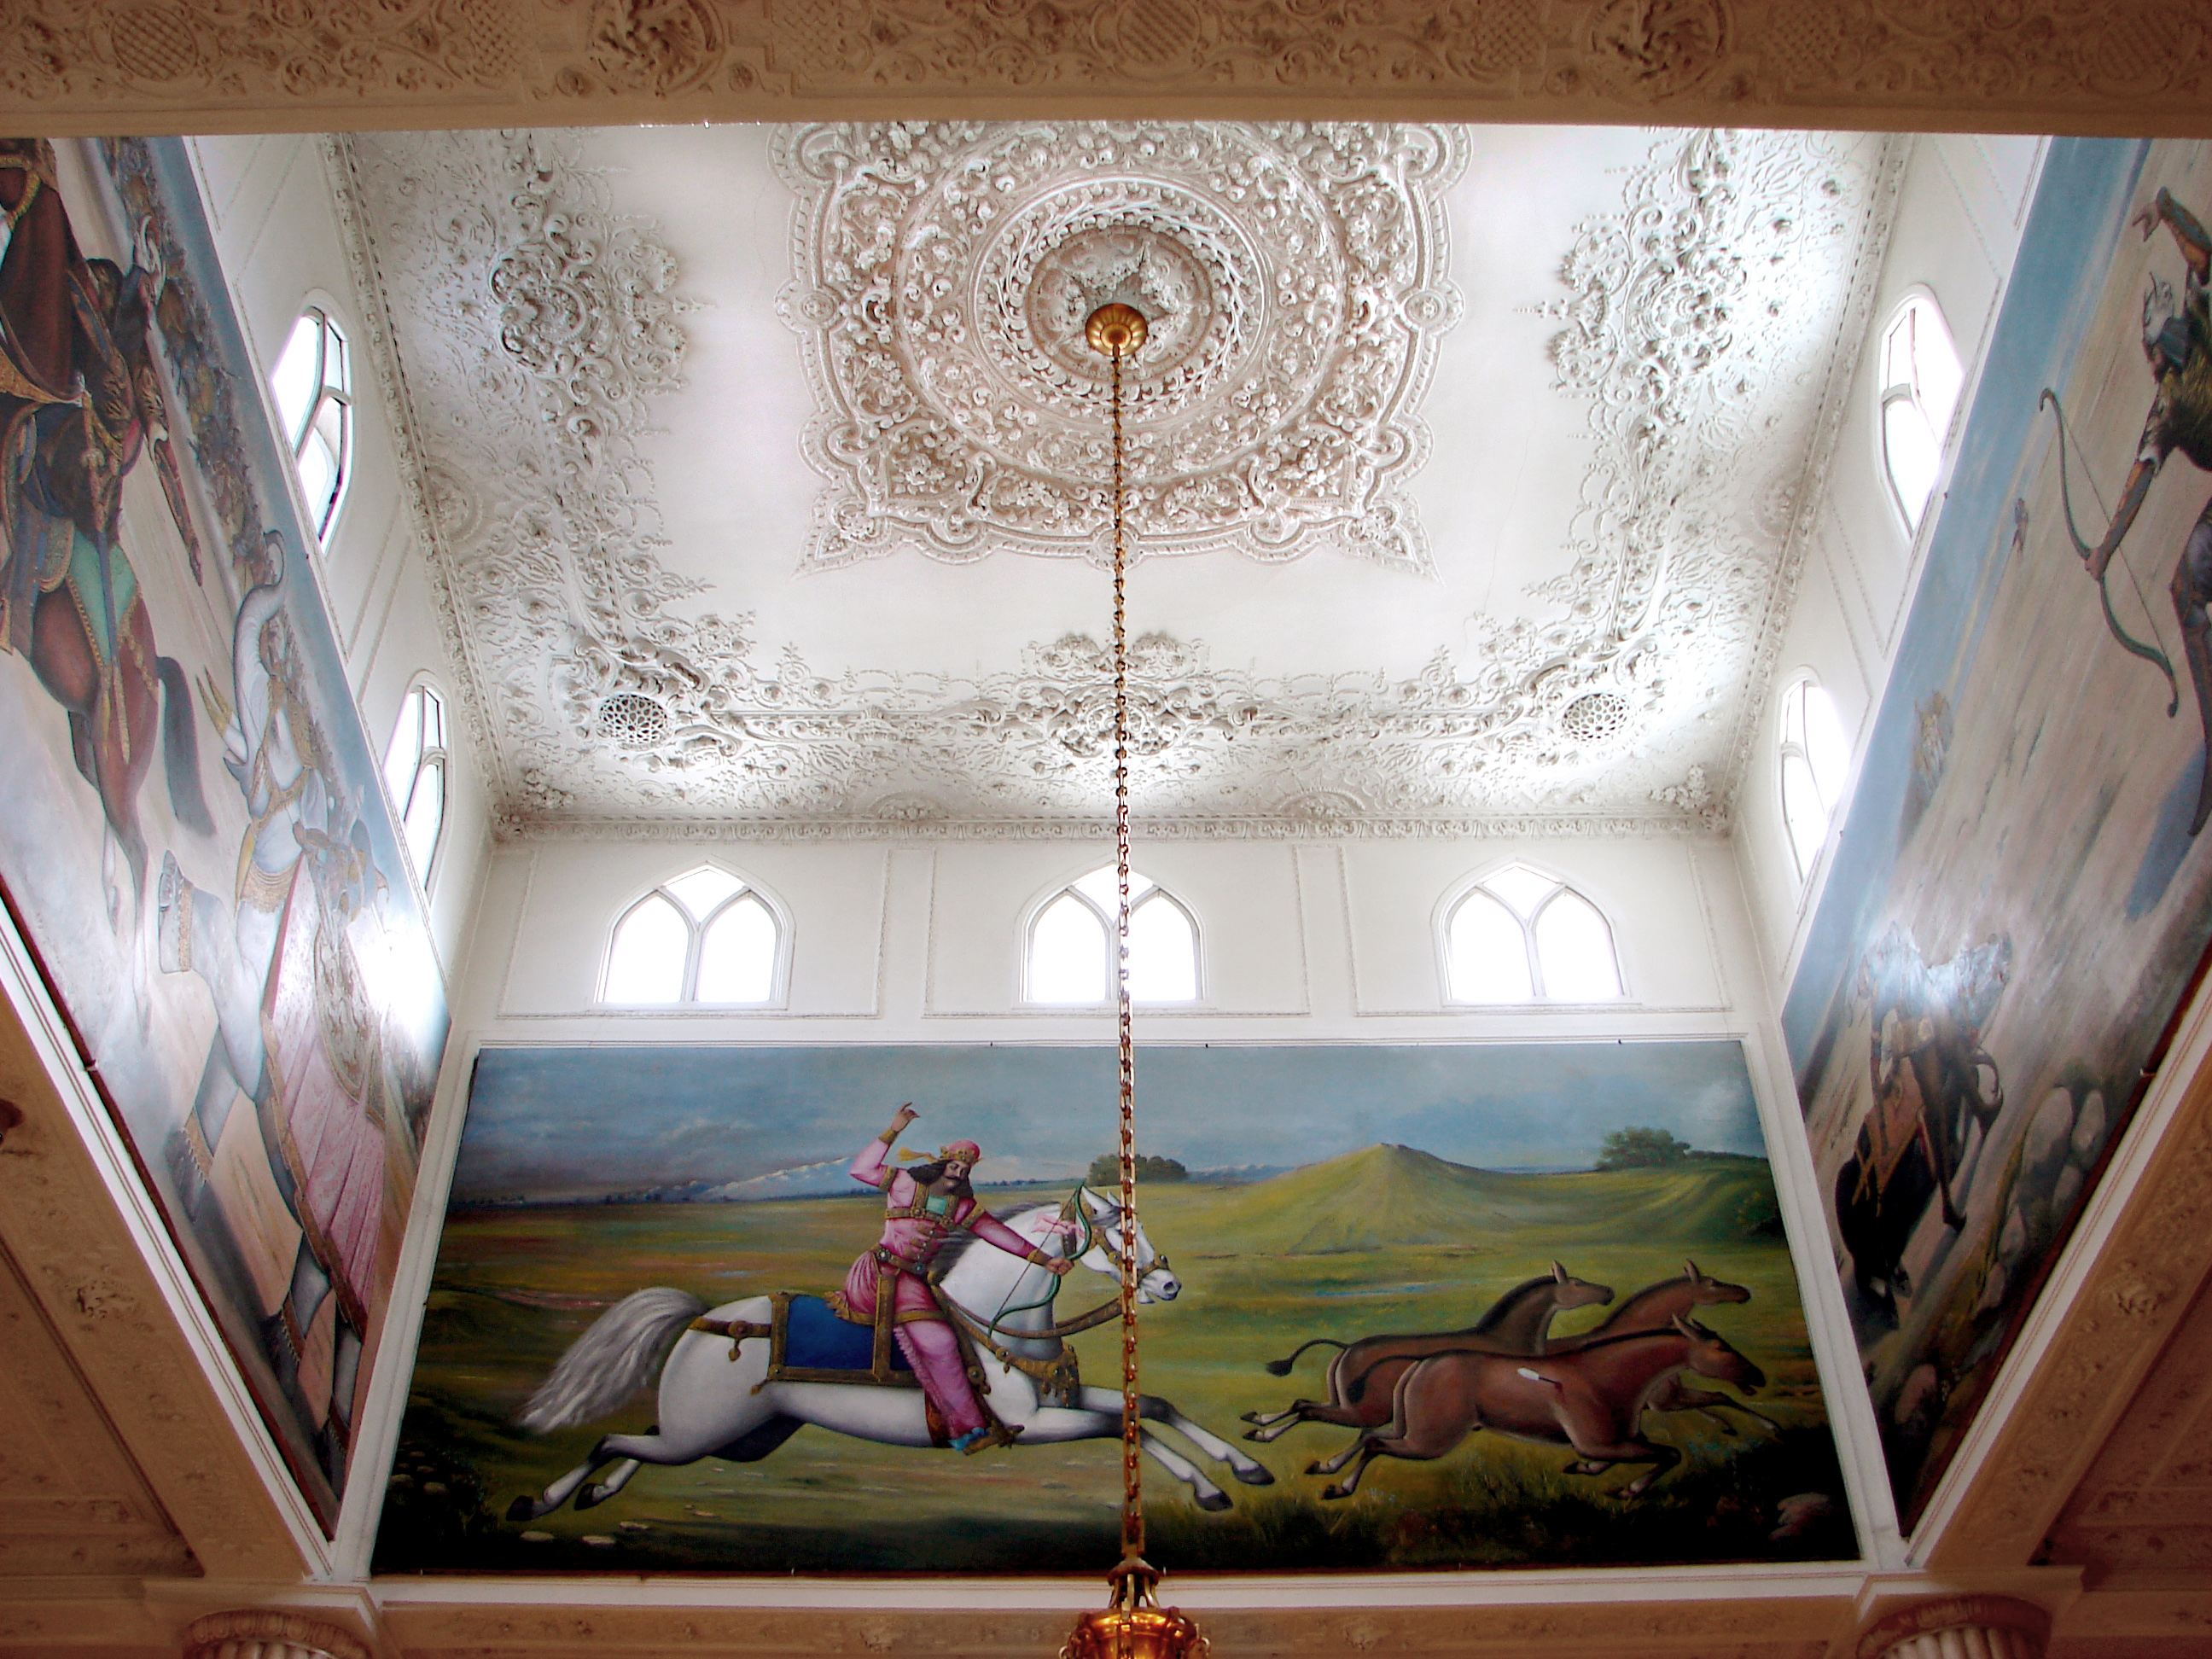 file:hall ceiling of white castle - wikimedia commons